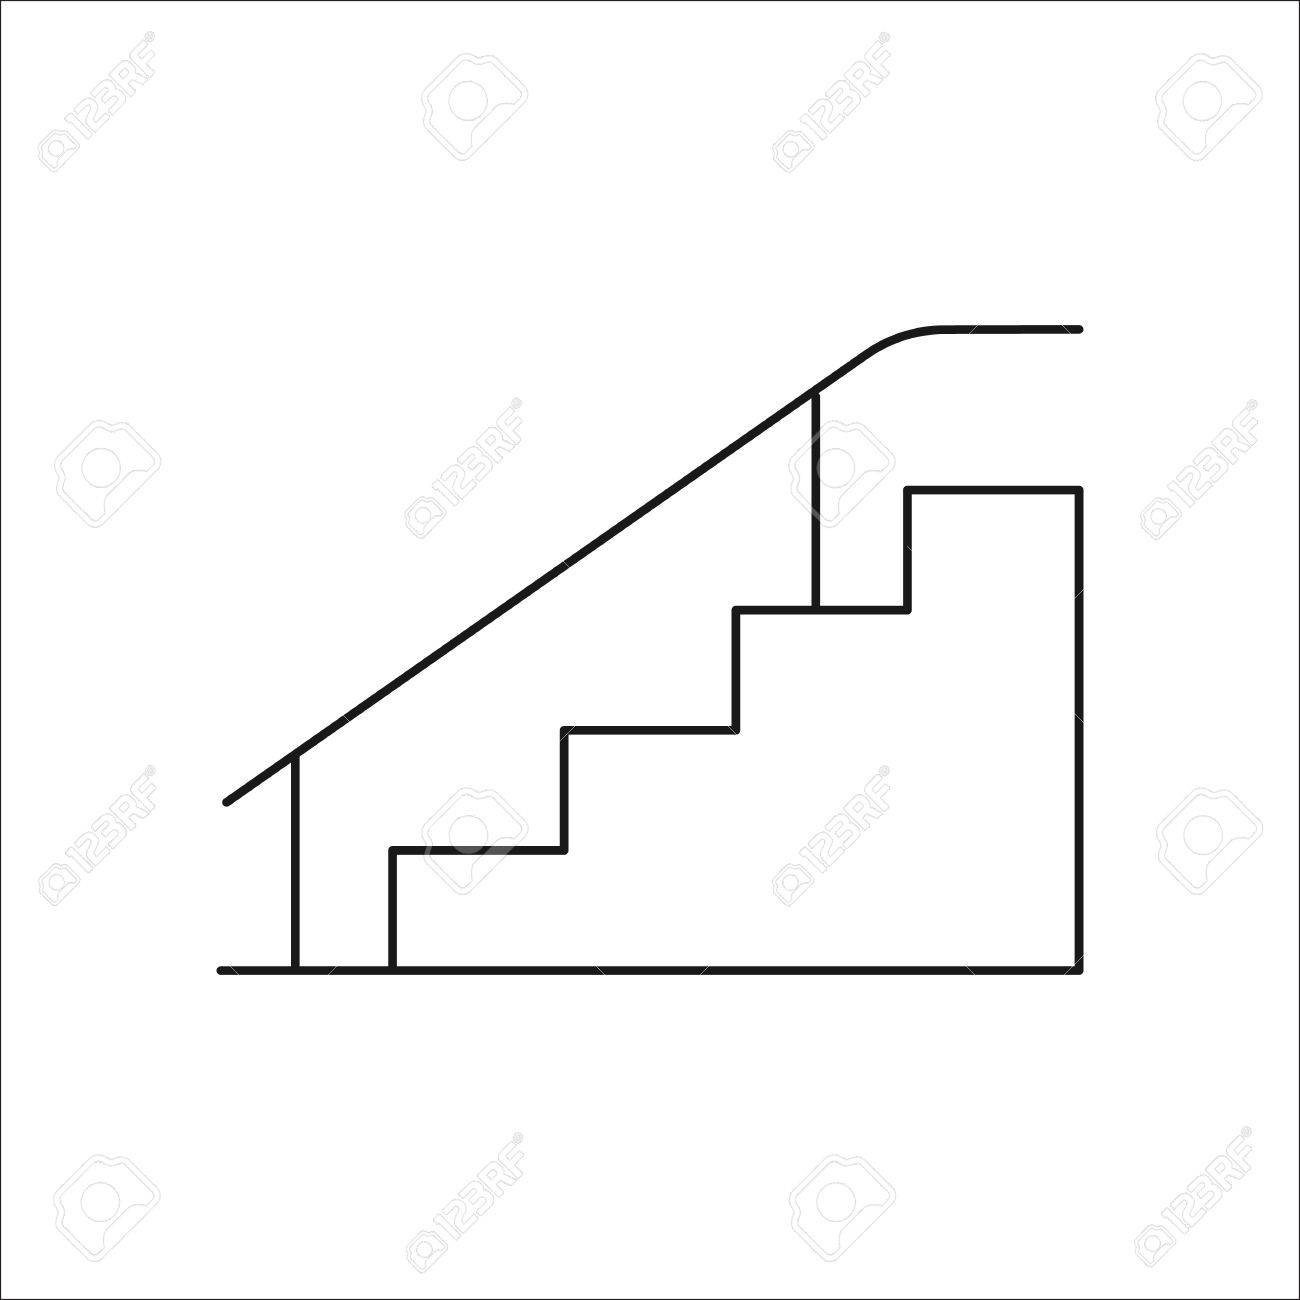 Skateboard stairs with rail symbol sign line icon on background skateboard stairs with rail symbol sign line icon on background stock vector 69783187 buycottarizona